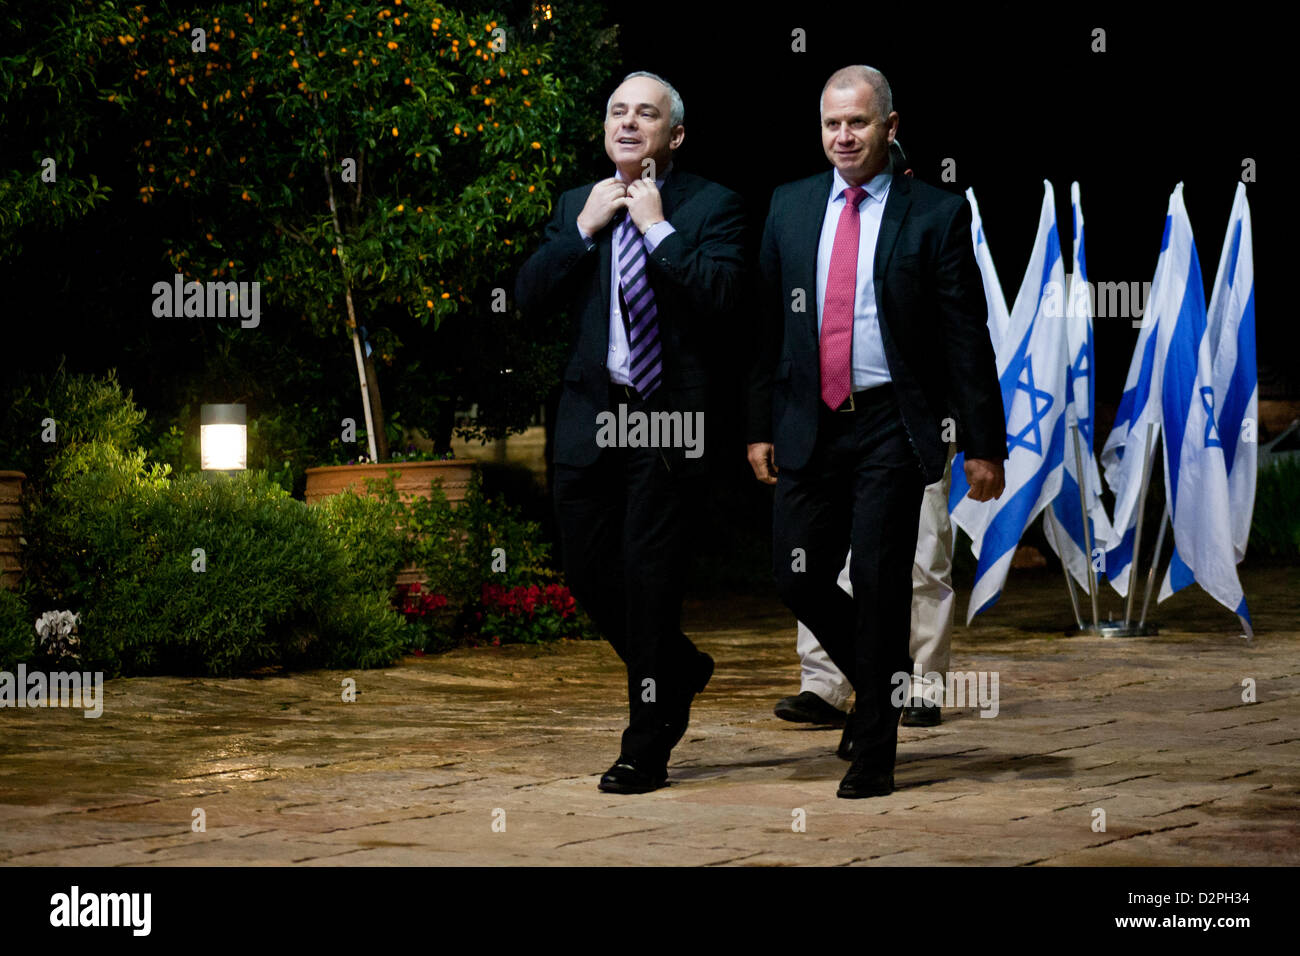 Incumbent Minister of Finance in outgoing government, Yuval Steinitz (L), representing Likud-Beitenu, is escorted - Stock Image